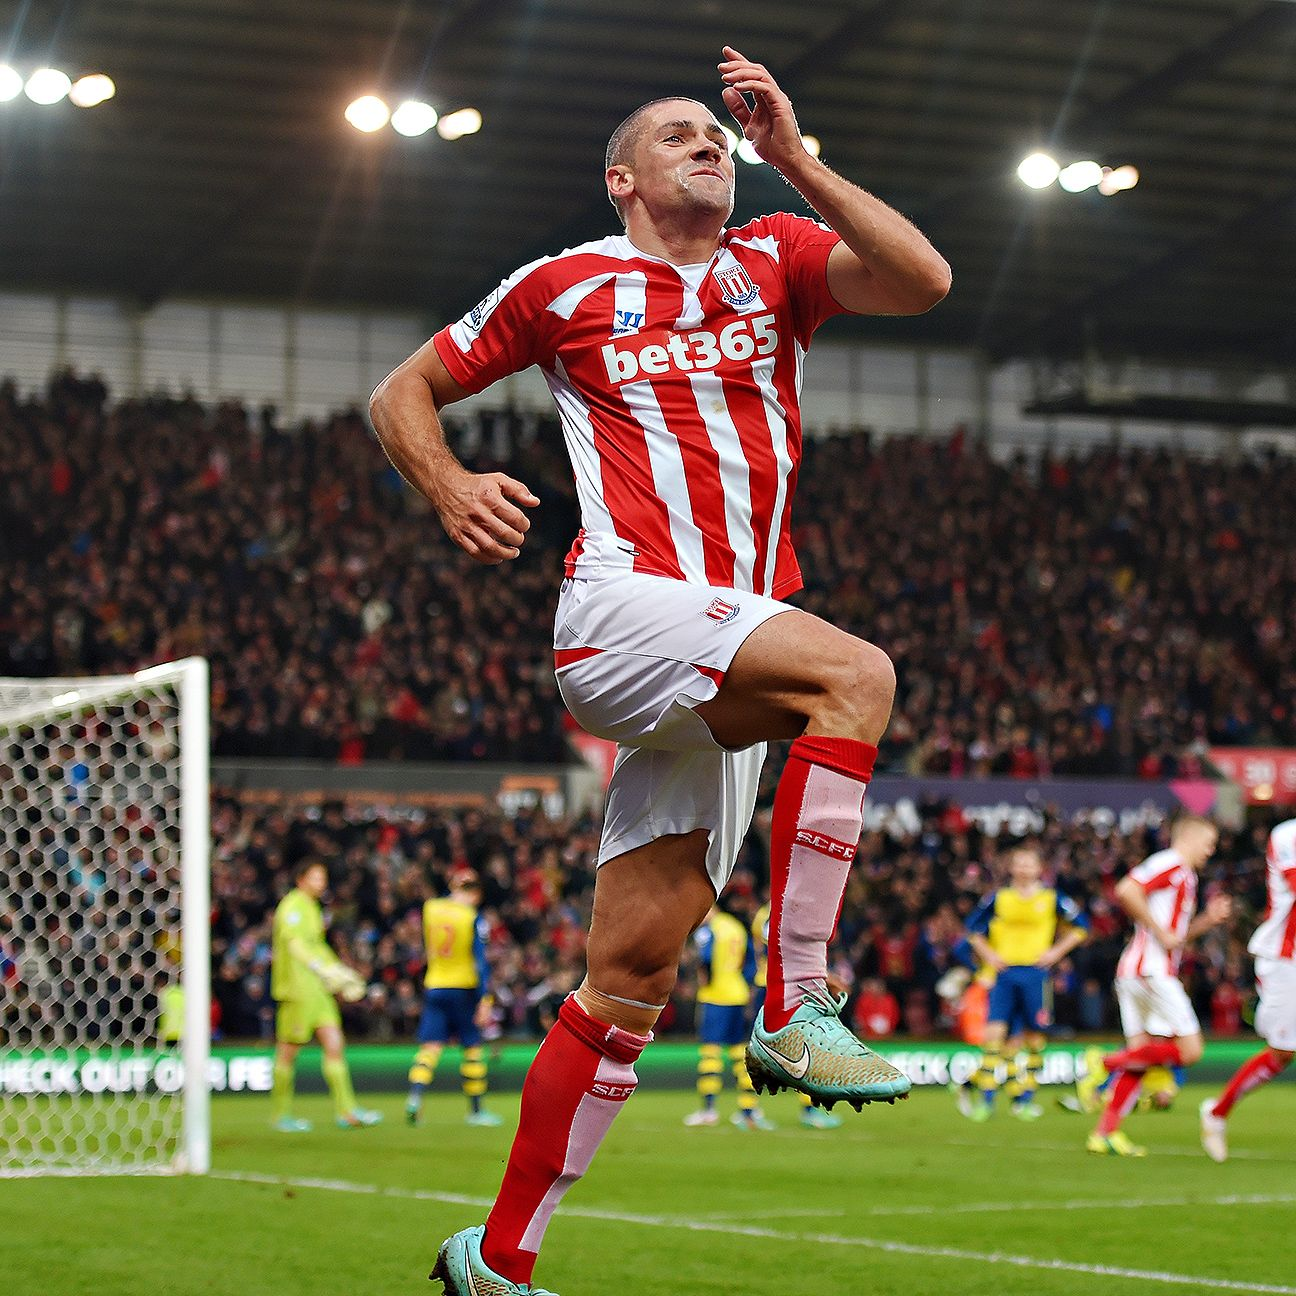 Without fail, Stoke fans will find Jonathan Walters' name on the teamsheet before every match.